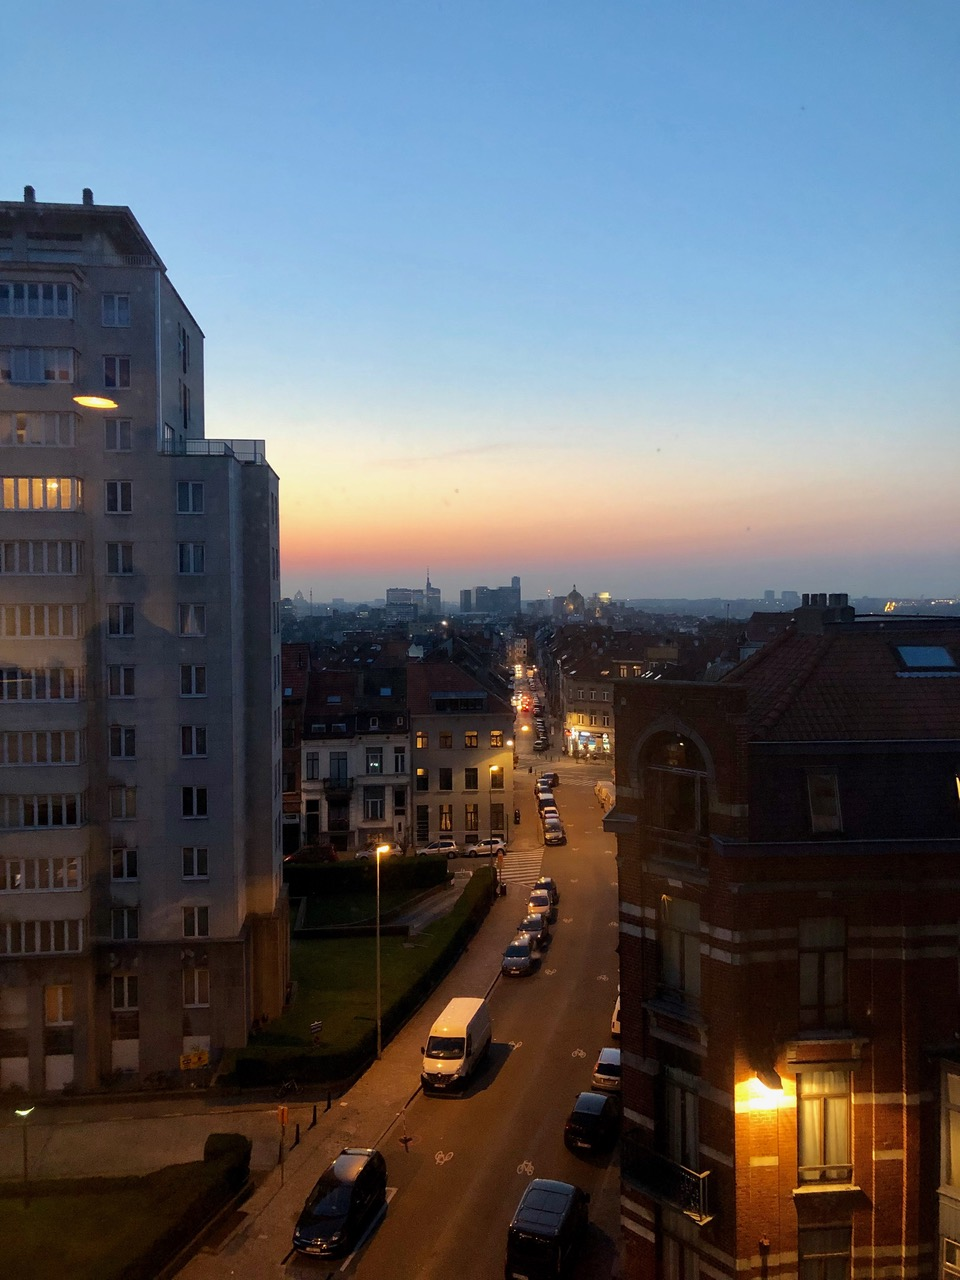 Sunset in Brussels on the way to Lisbon. (Photo: Gavin McCrory)